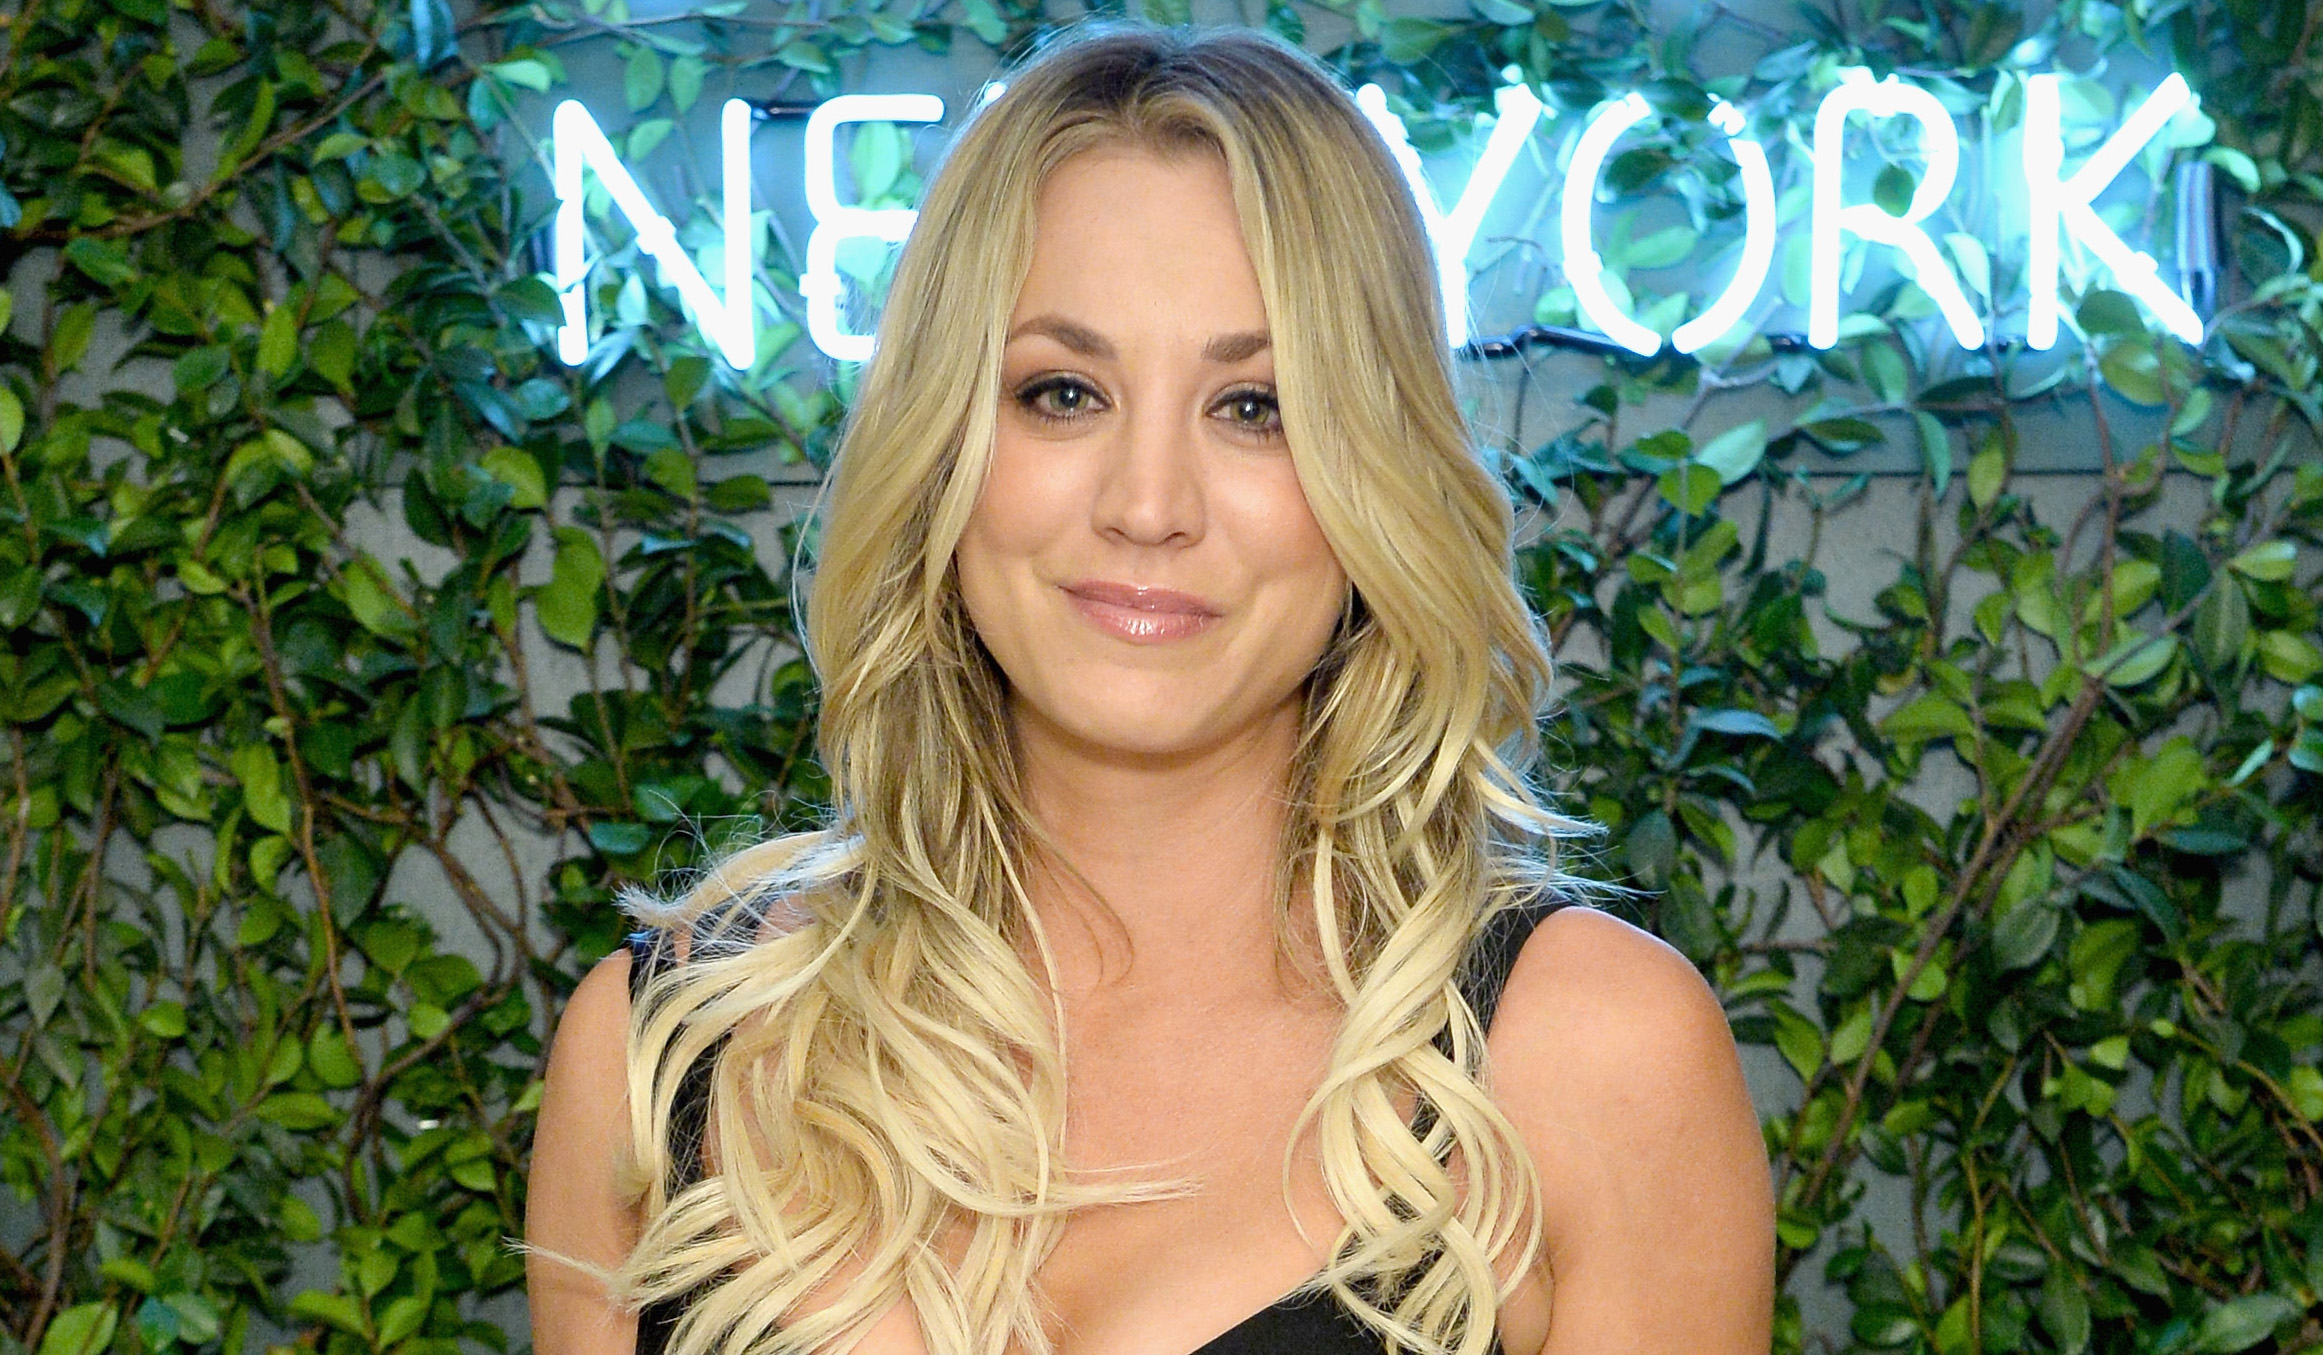 Kaley Cuoco just opened up about the plastic surgery she's had done, we applaud her honesty